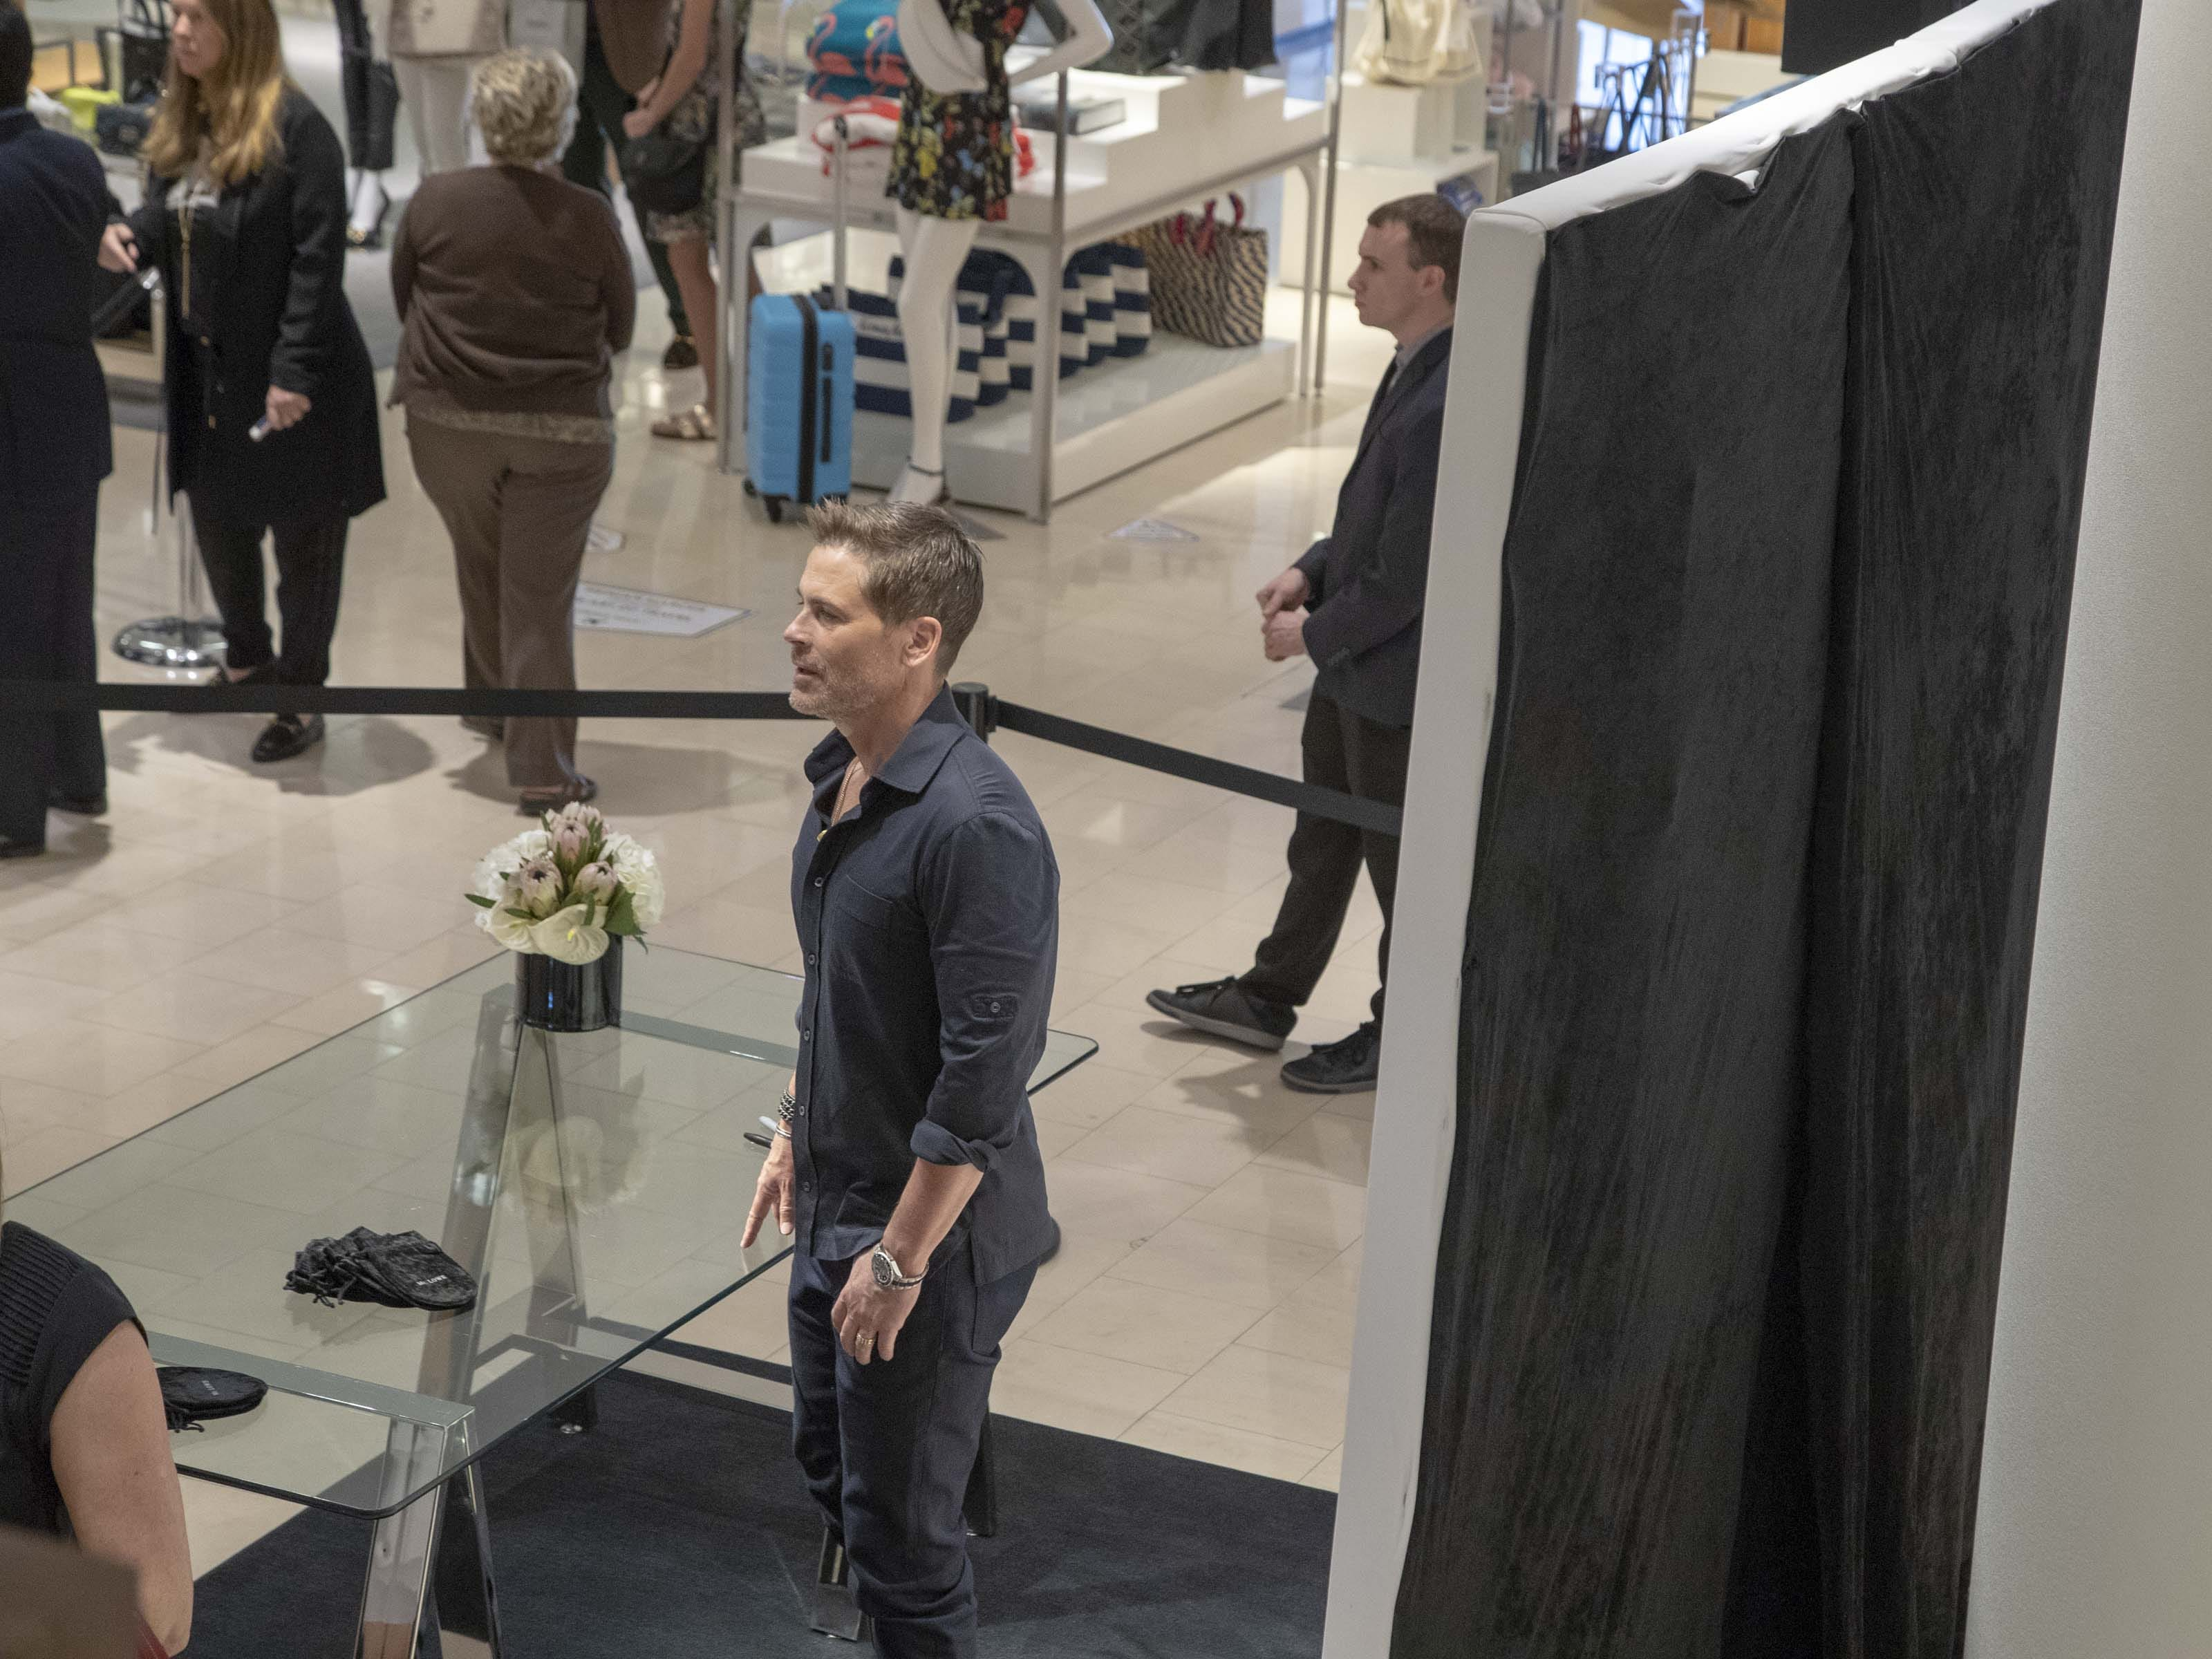 Actor Rob Lowe introduces his new men's jewelry collection at Scottsdale Fashion Square on March 28, 2019.